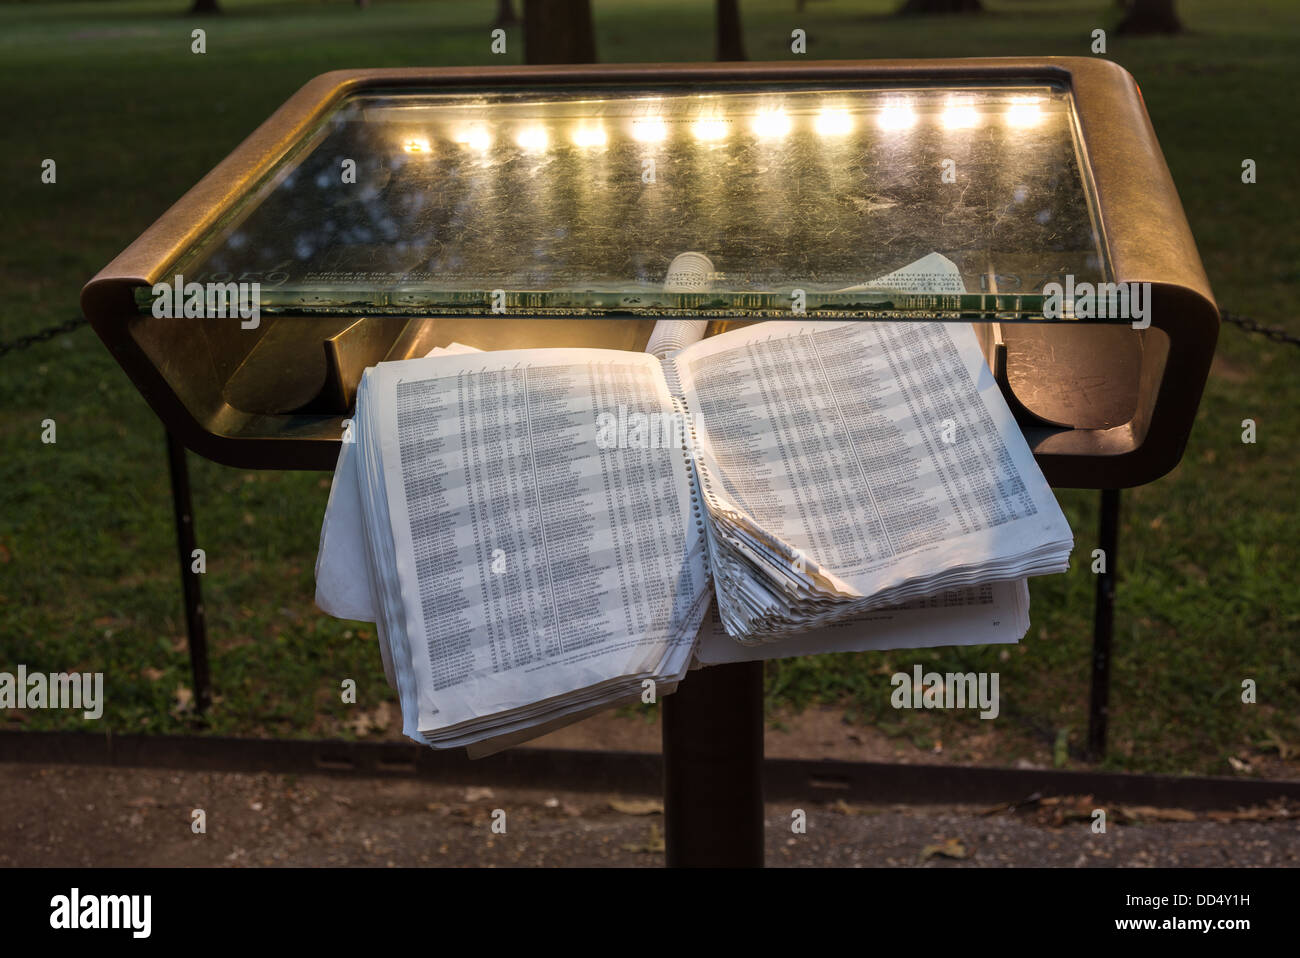 Book Containing Names Of The Fallen In The Vietnam War At The Stock Photo Alamy